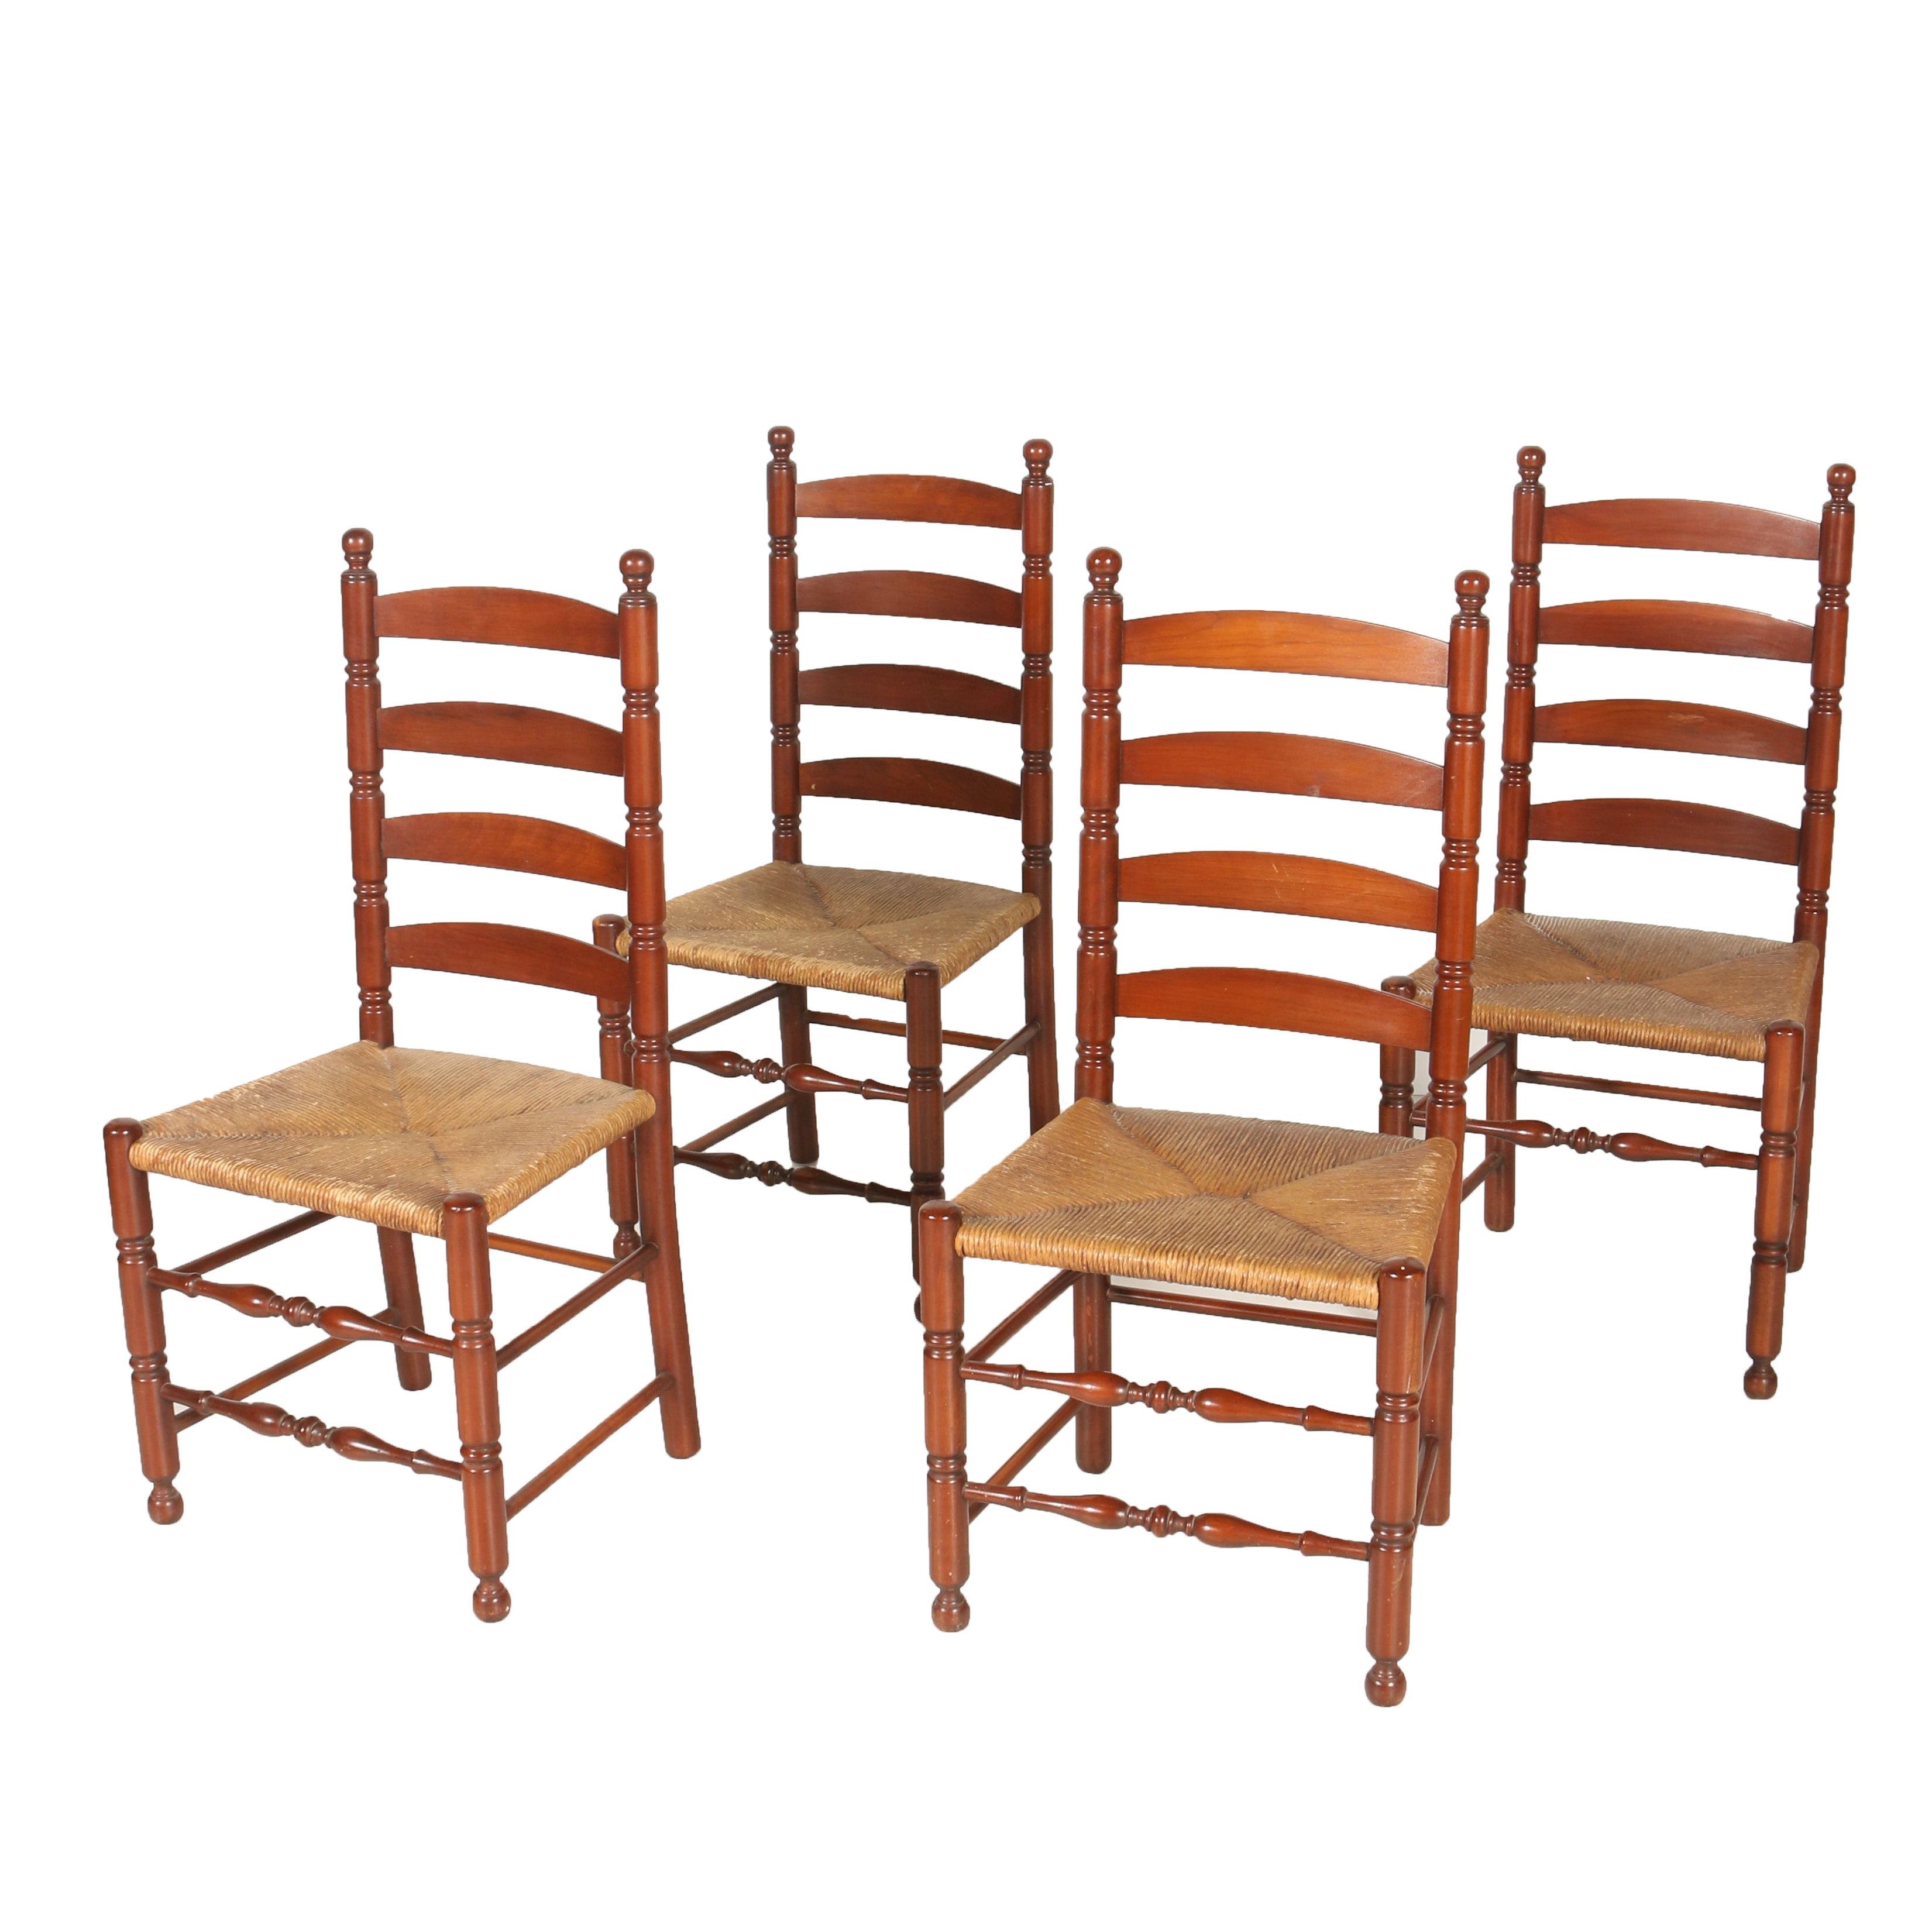 Four Cherry Ladder Back Chairs